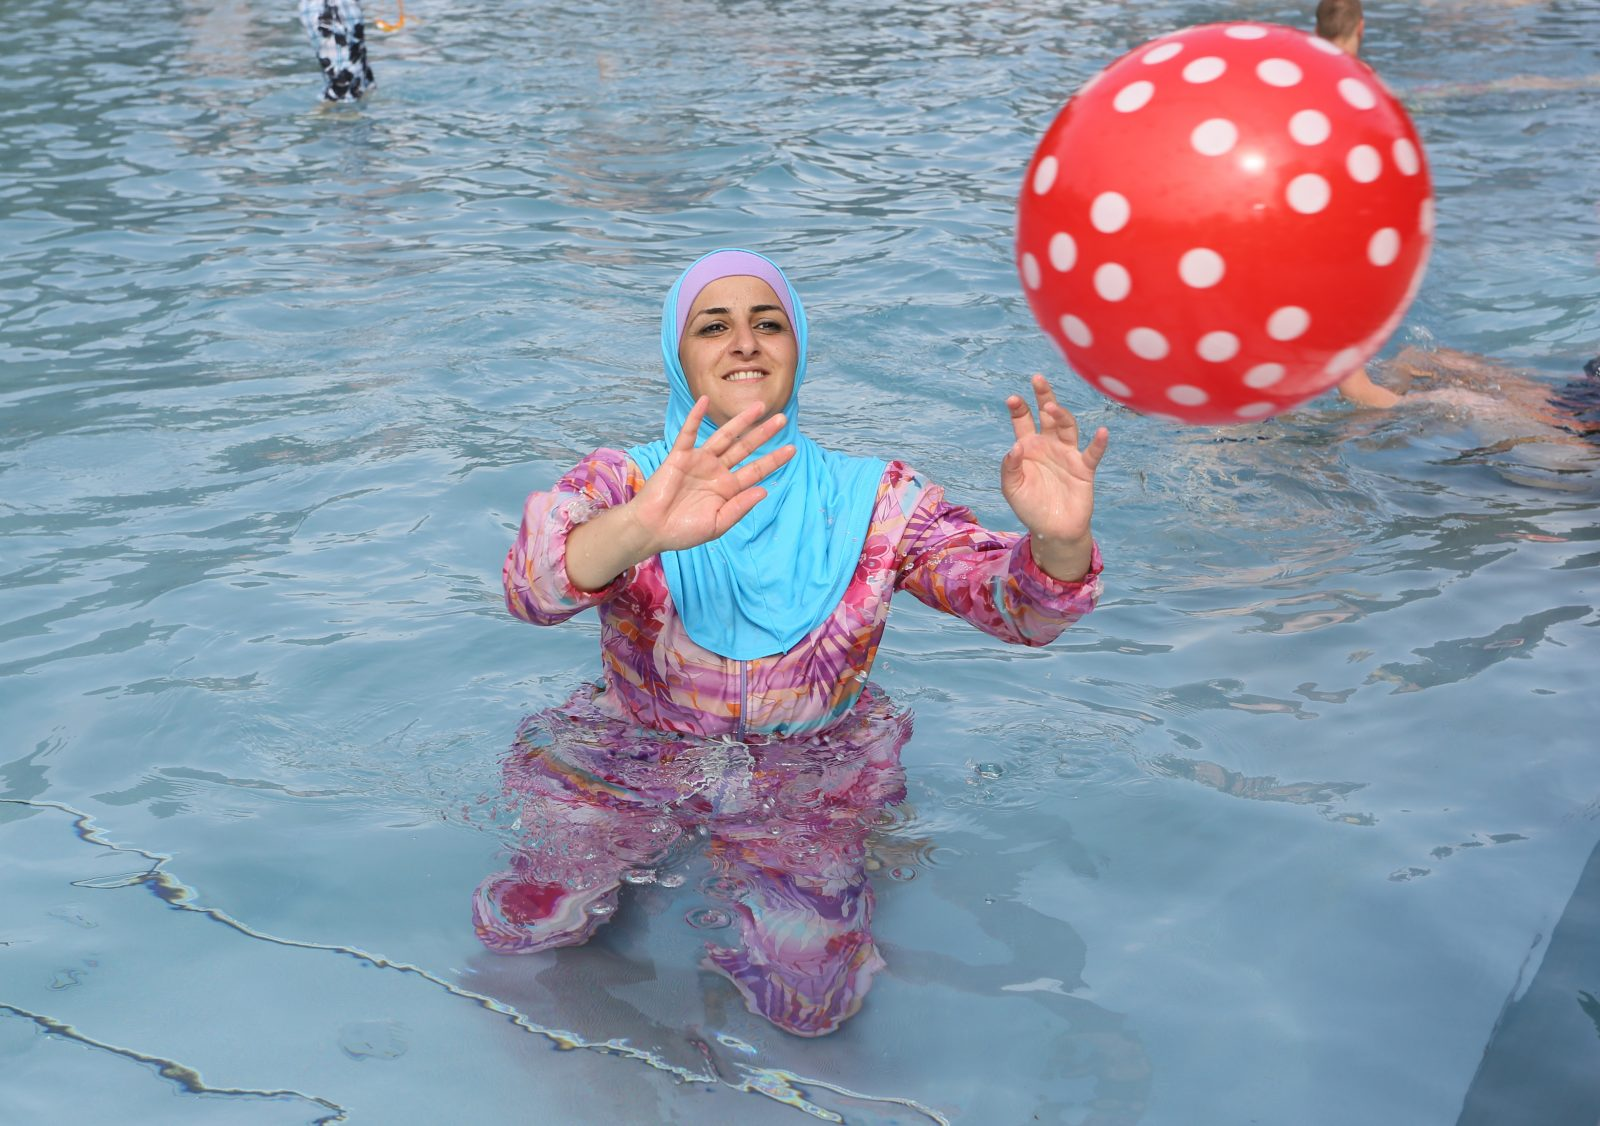 Frau in Burkini